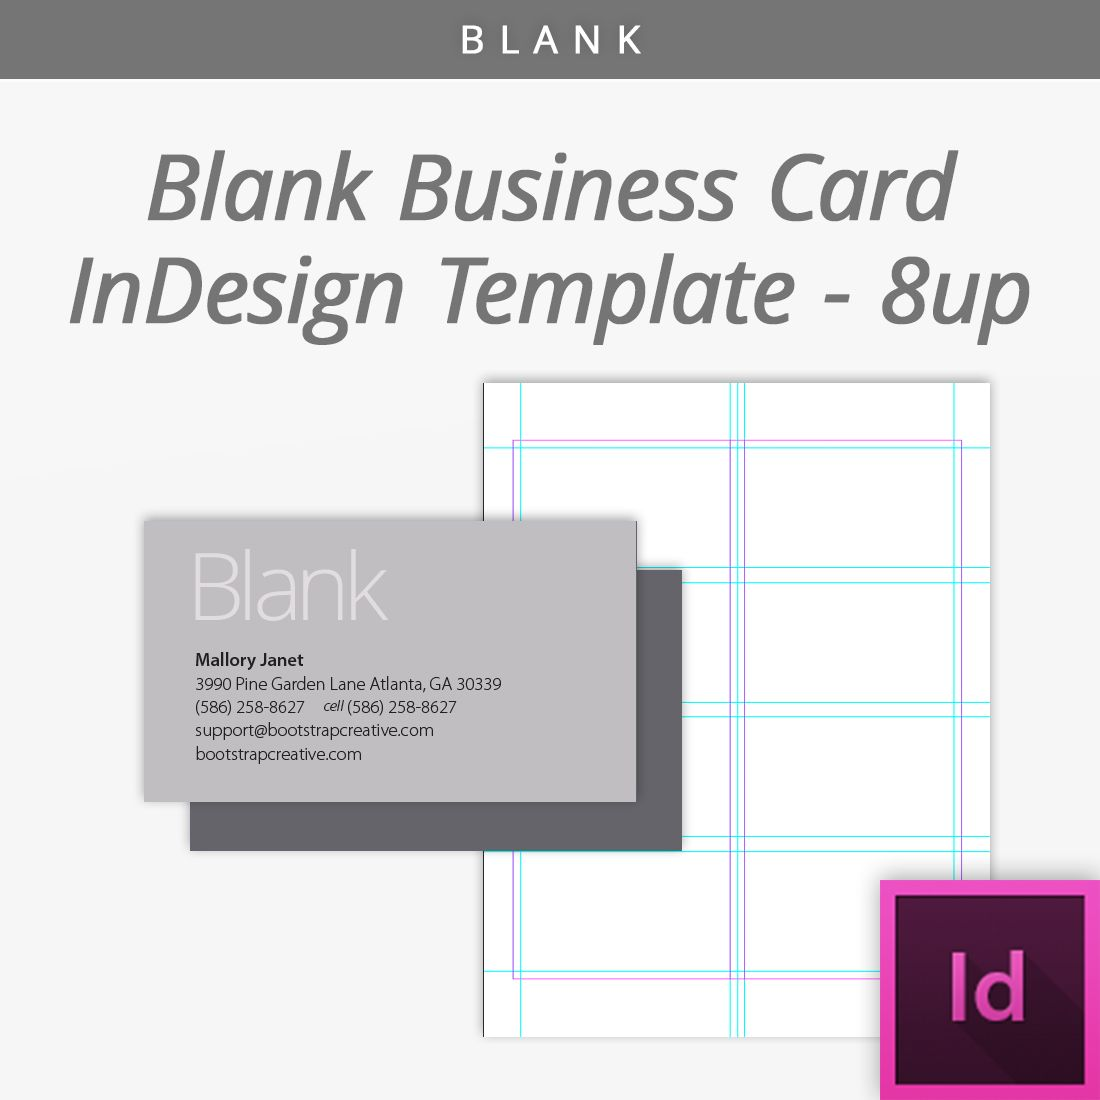 Blank indesign business card template 8 up free download blank indesign business card template 8 up free download designtemplate cheaphphosting